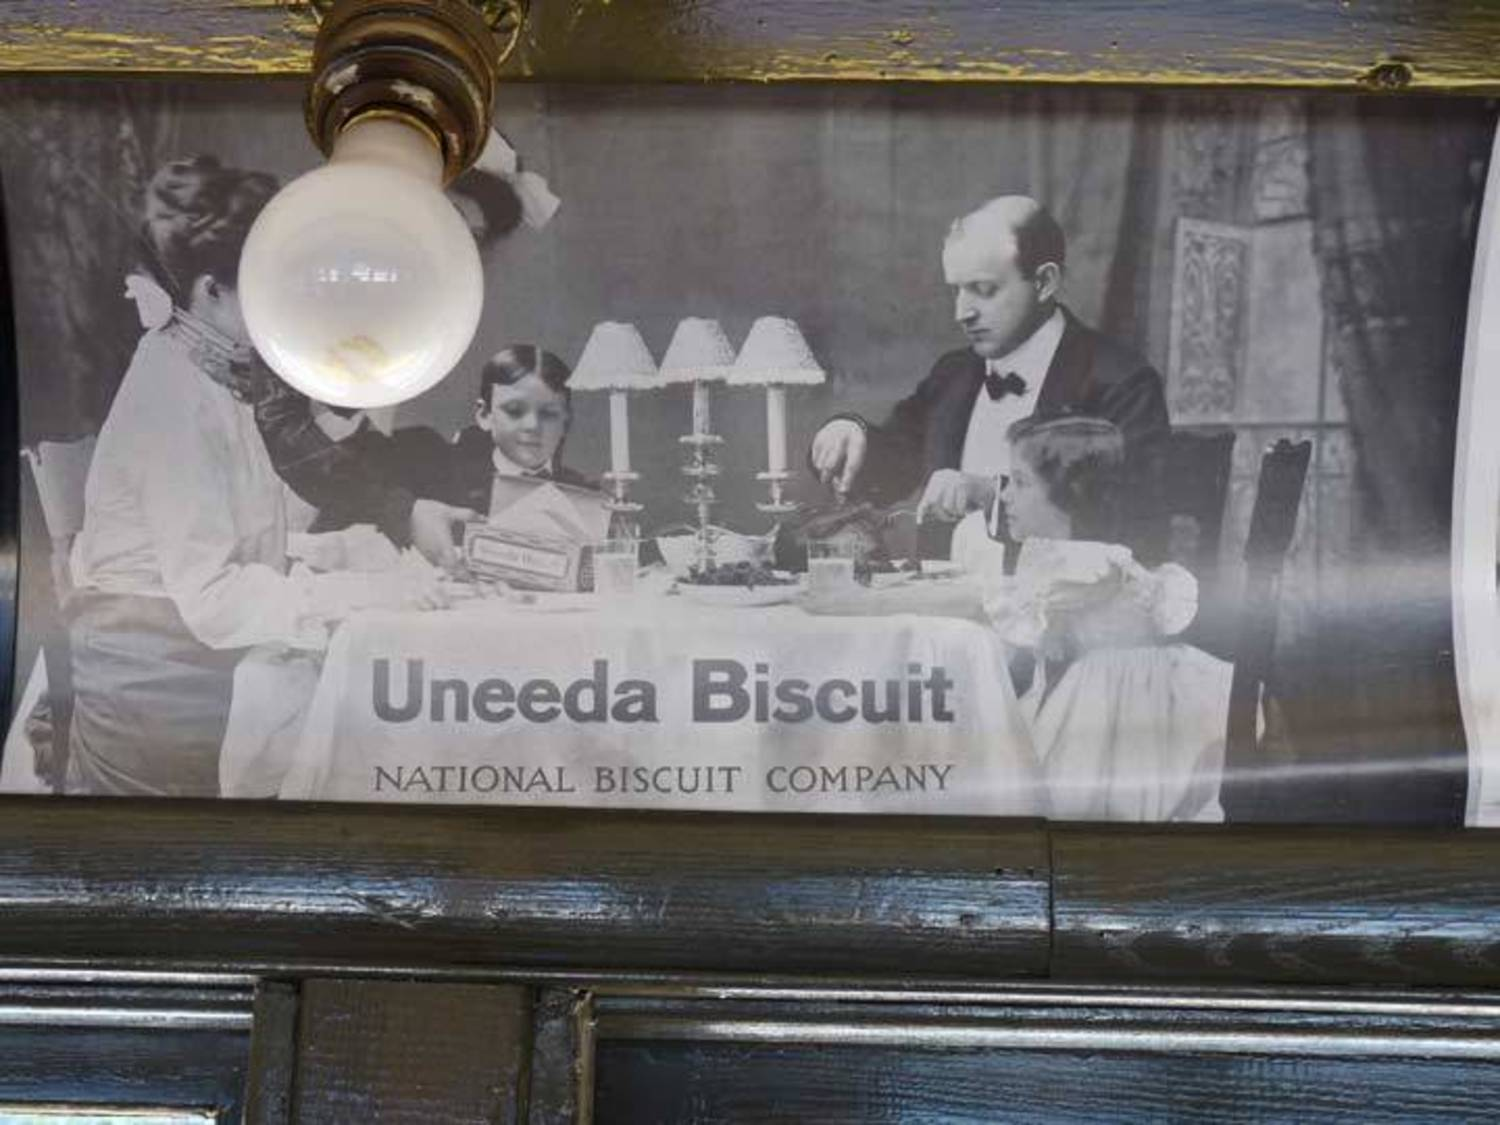 Uneeda Biscuits